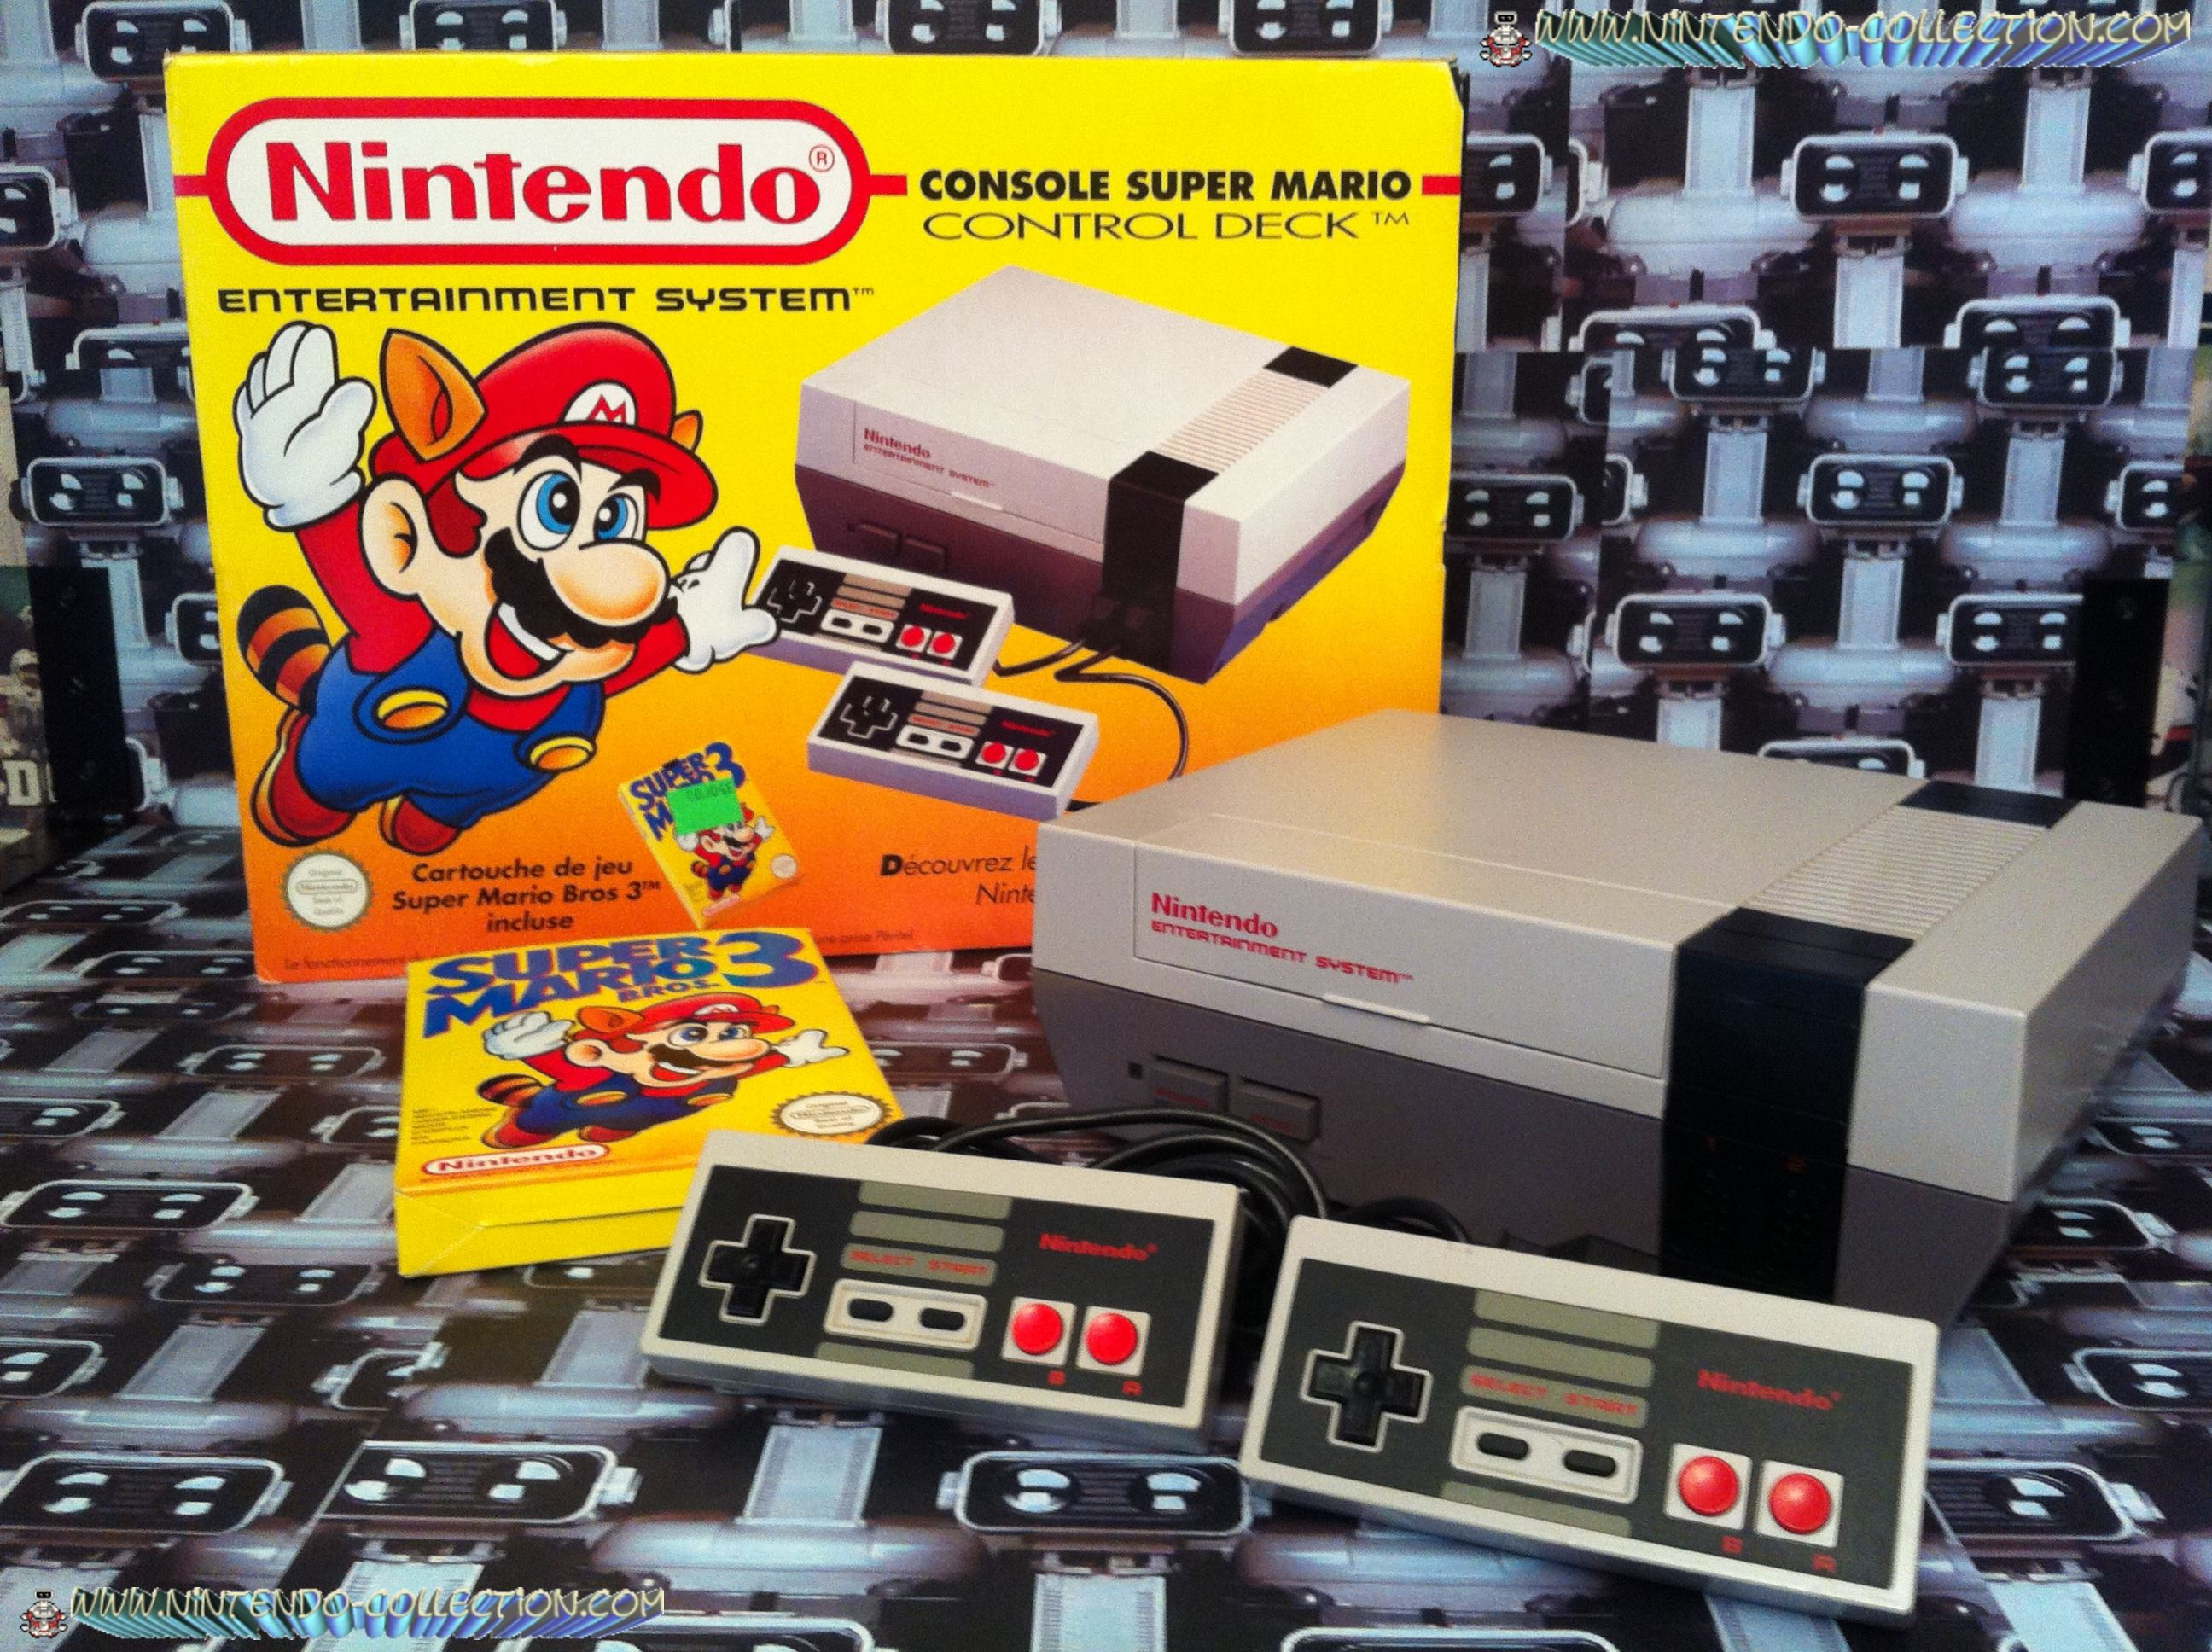 www.nintendo-collection.com - Nintendo NES Super Mario Bros 3 Pack Euro